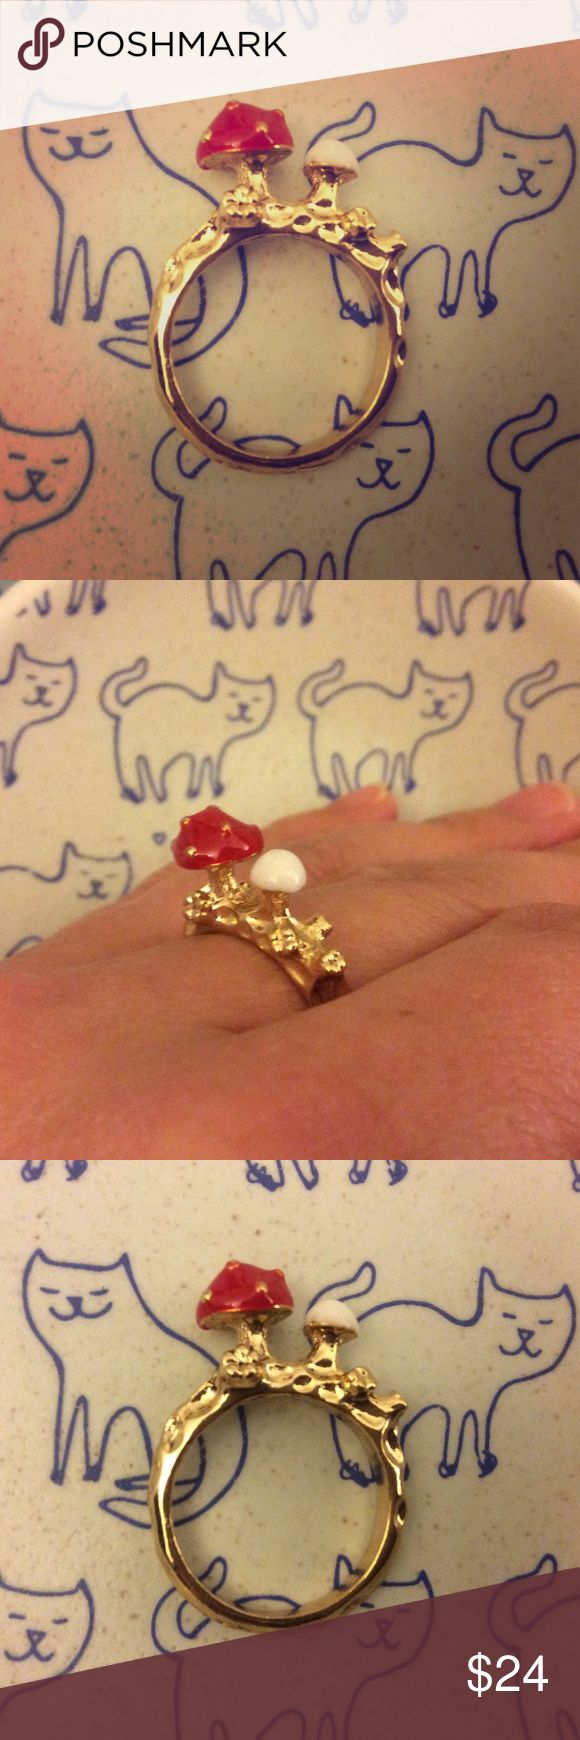 Tiny mushroom ring cute kawaii Japanese jewelry This adorable ring features a red cap mushroom and a tiny white shroom next to it. Gold colored hardware. Approximate size 7. Purchased from our last trip to Tokyo Japan. Check out our other listings to bundle! Not urban outfitters. Super cute  kawaii  kitsch  indie  adorable  Japanese  Japan Urban Outfitters Jewelry Rings